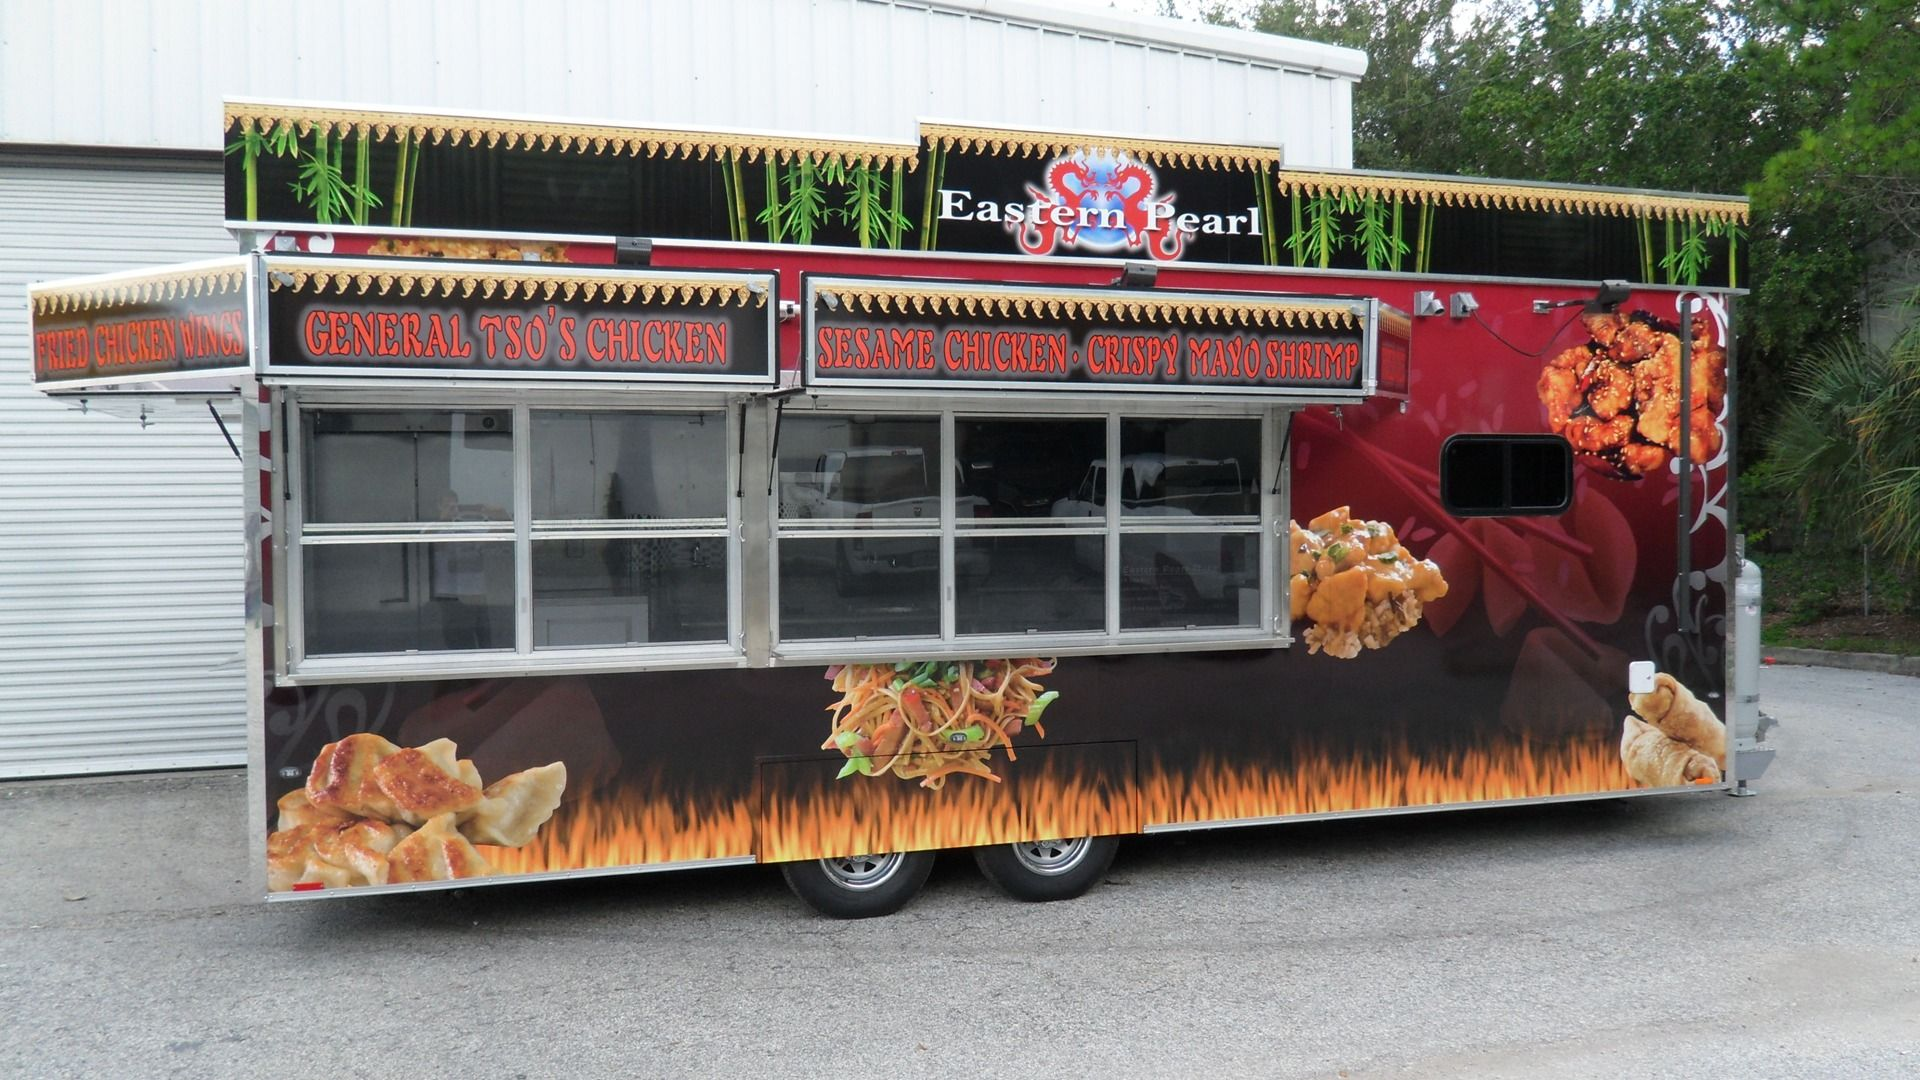 Concession trailer 8 5 x 14 white event custom enclosed kitchen 20341 18 285 00 concession and food trailers pinterest food trailer food truck